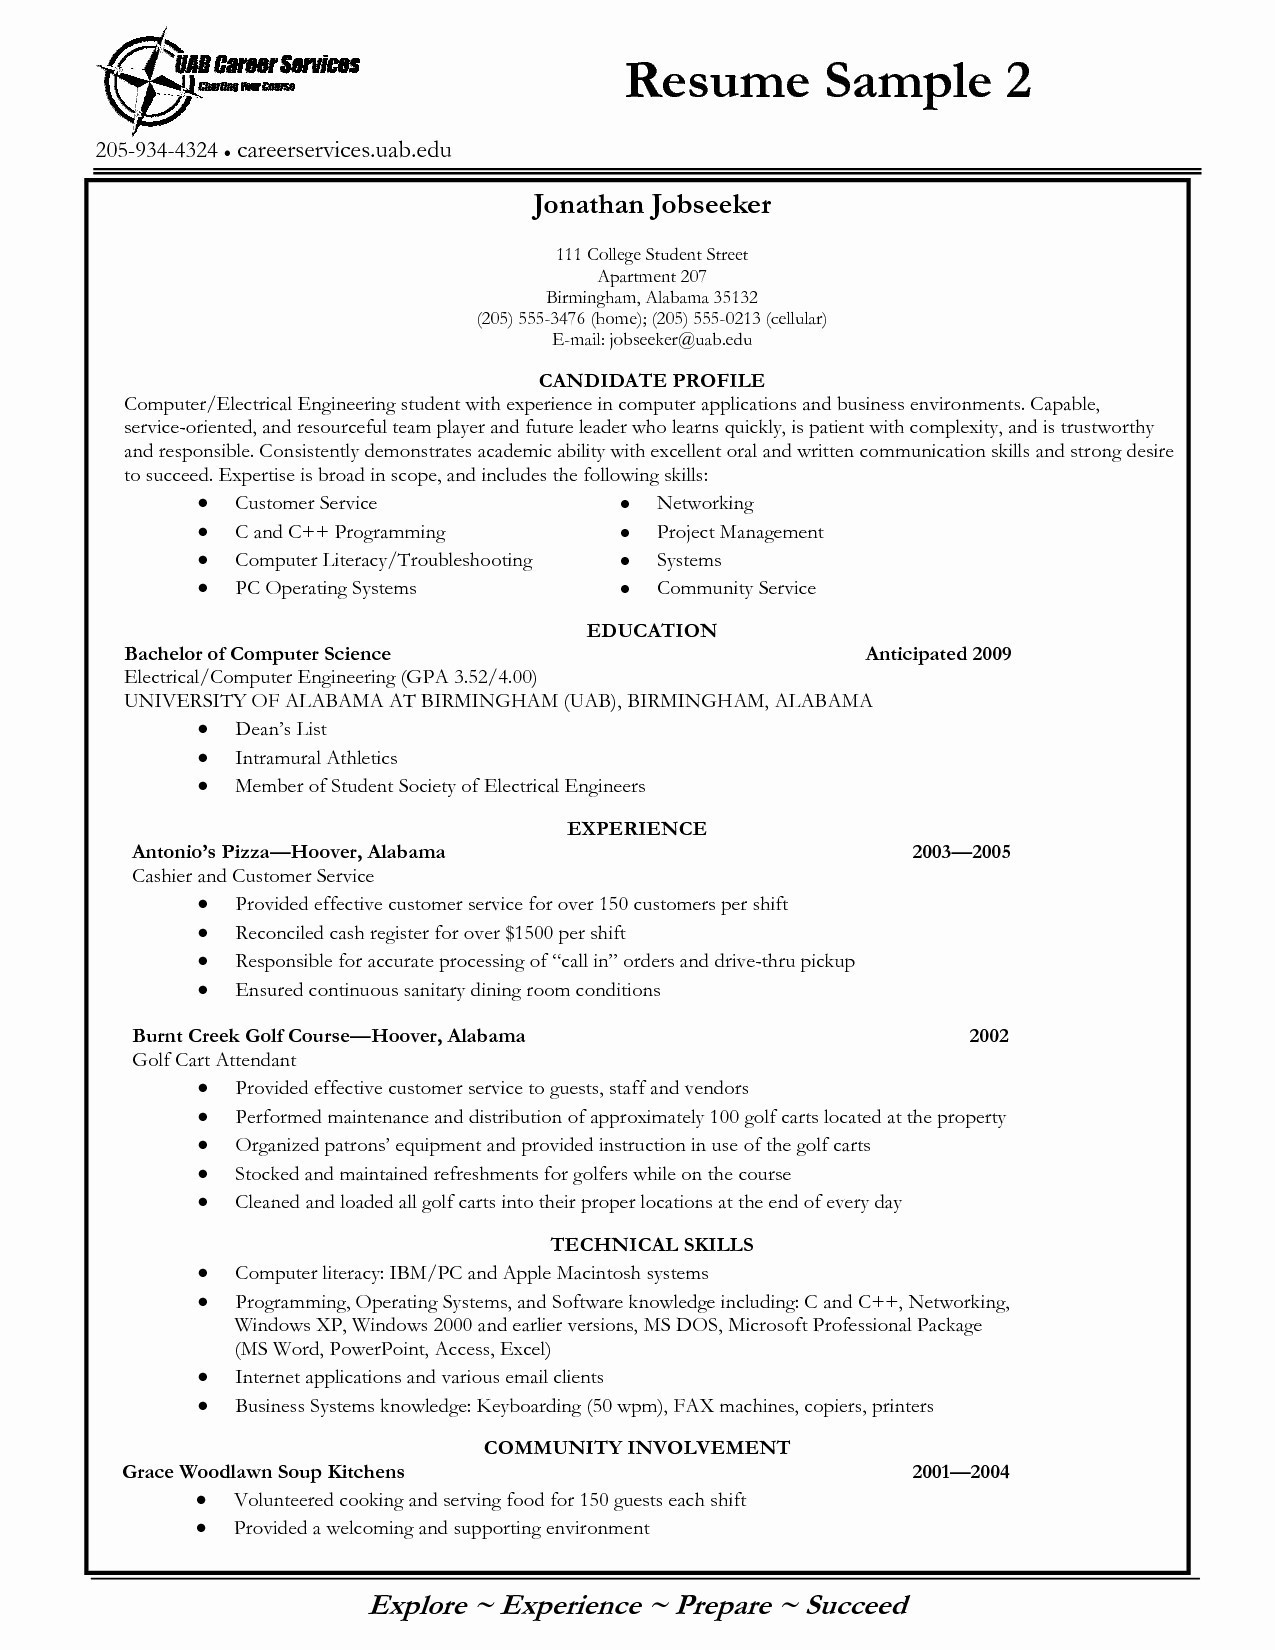 Athlete Resume Template - Resume Templates College Application Reference Business Analyst